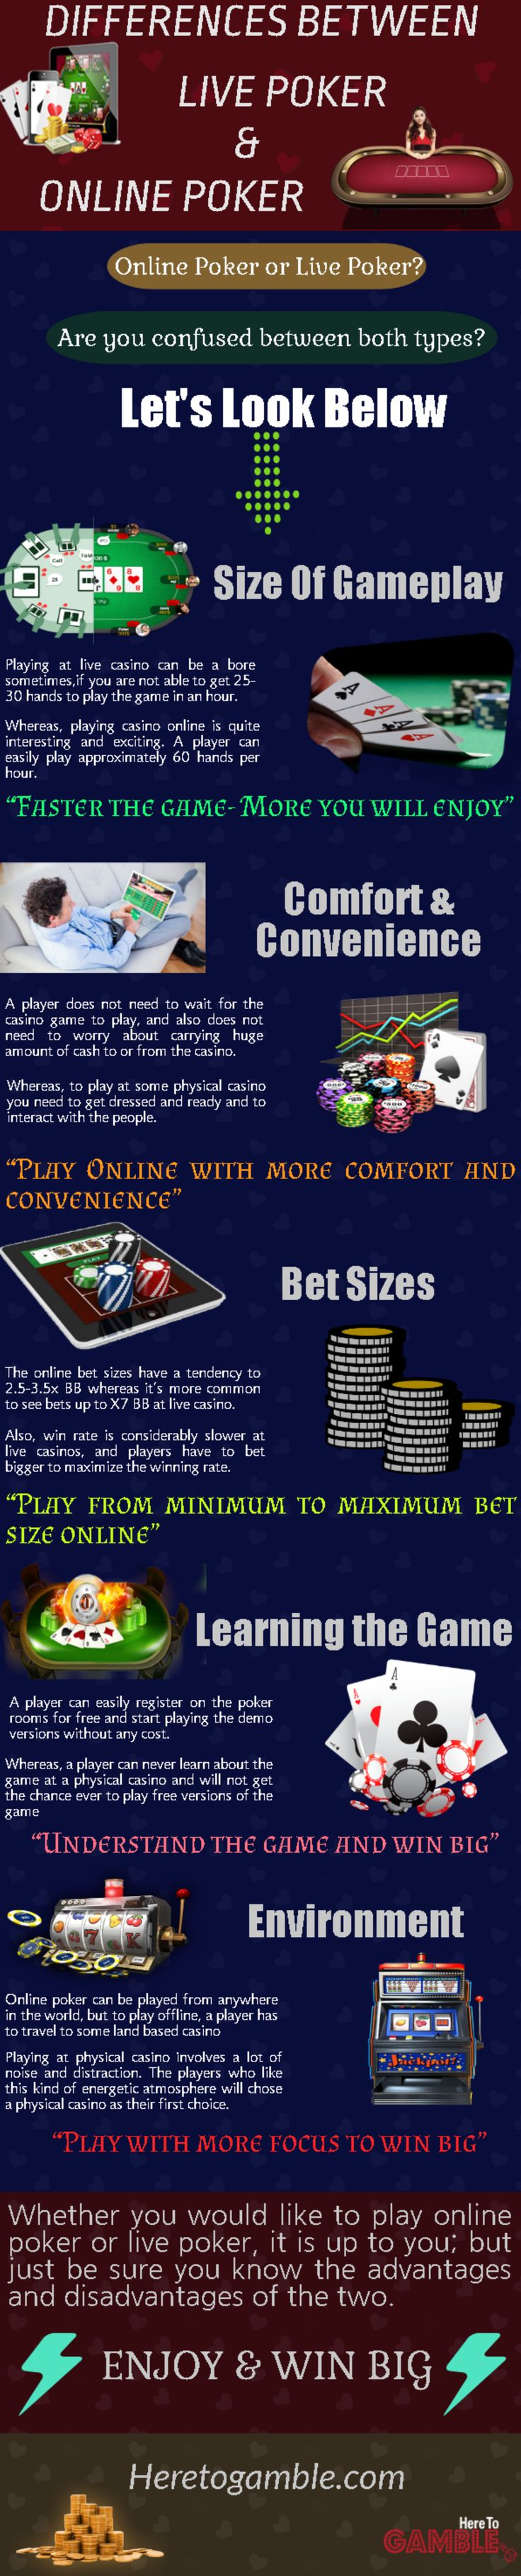 This Infographic illustrates the Crucial #differences between Live Poker & Online #Poker